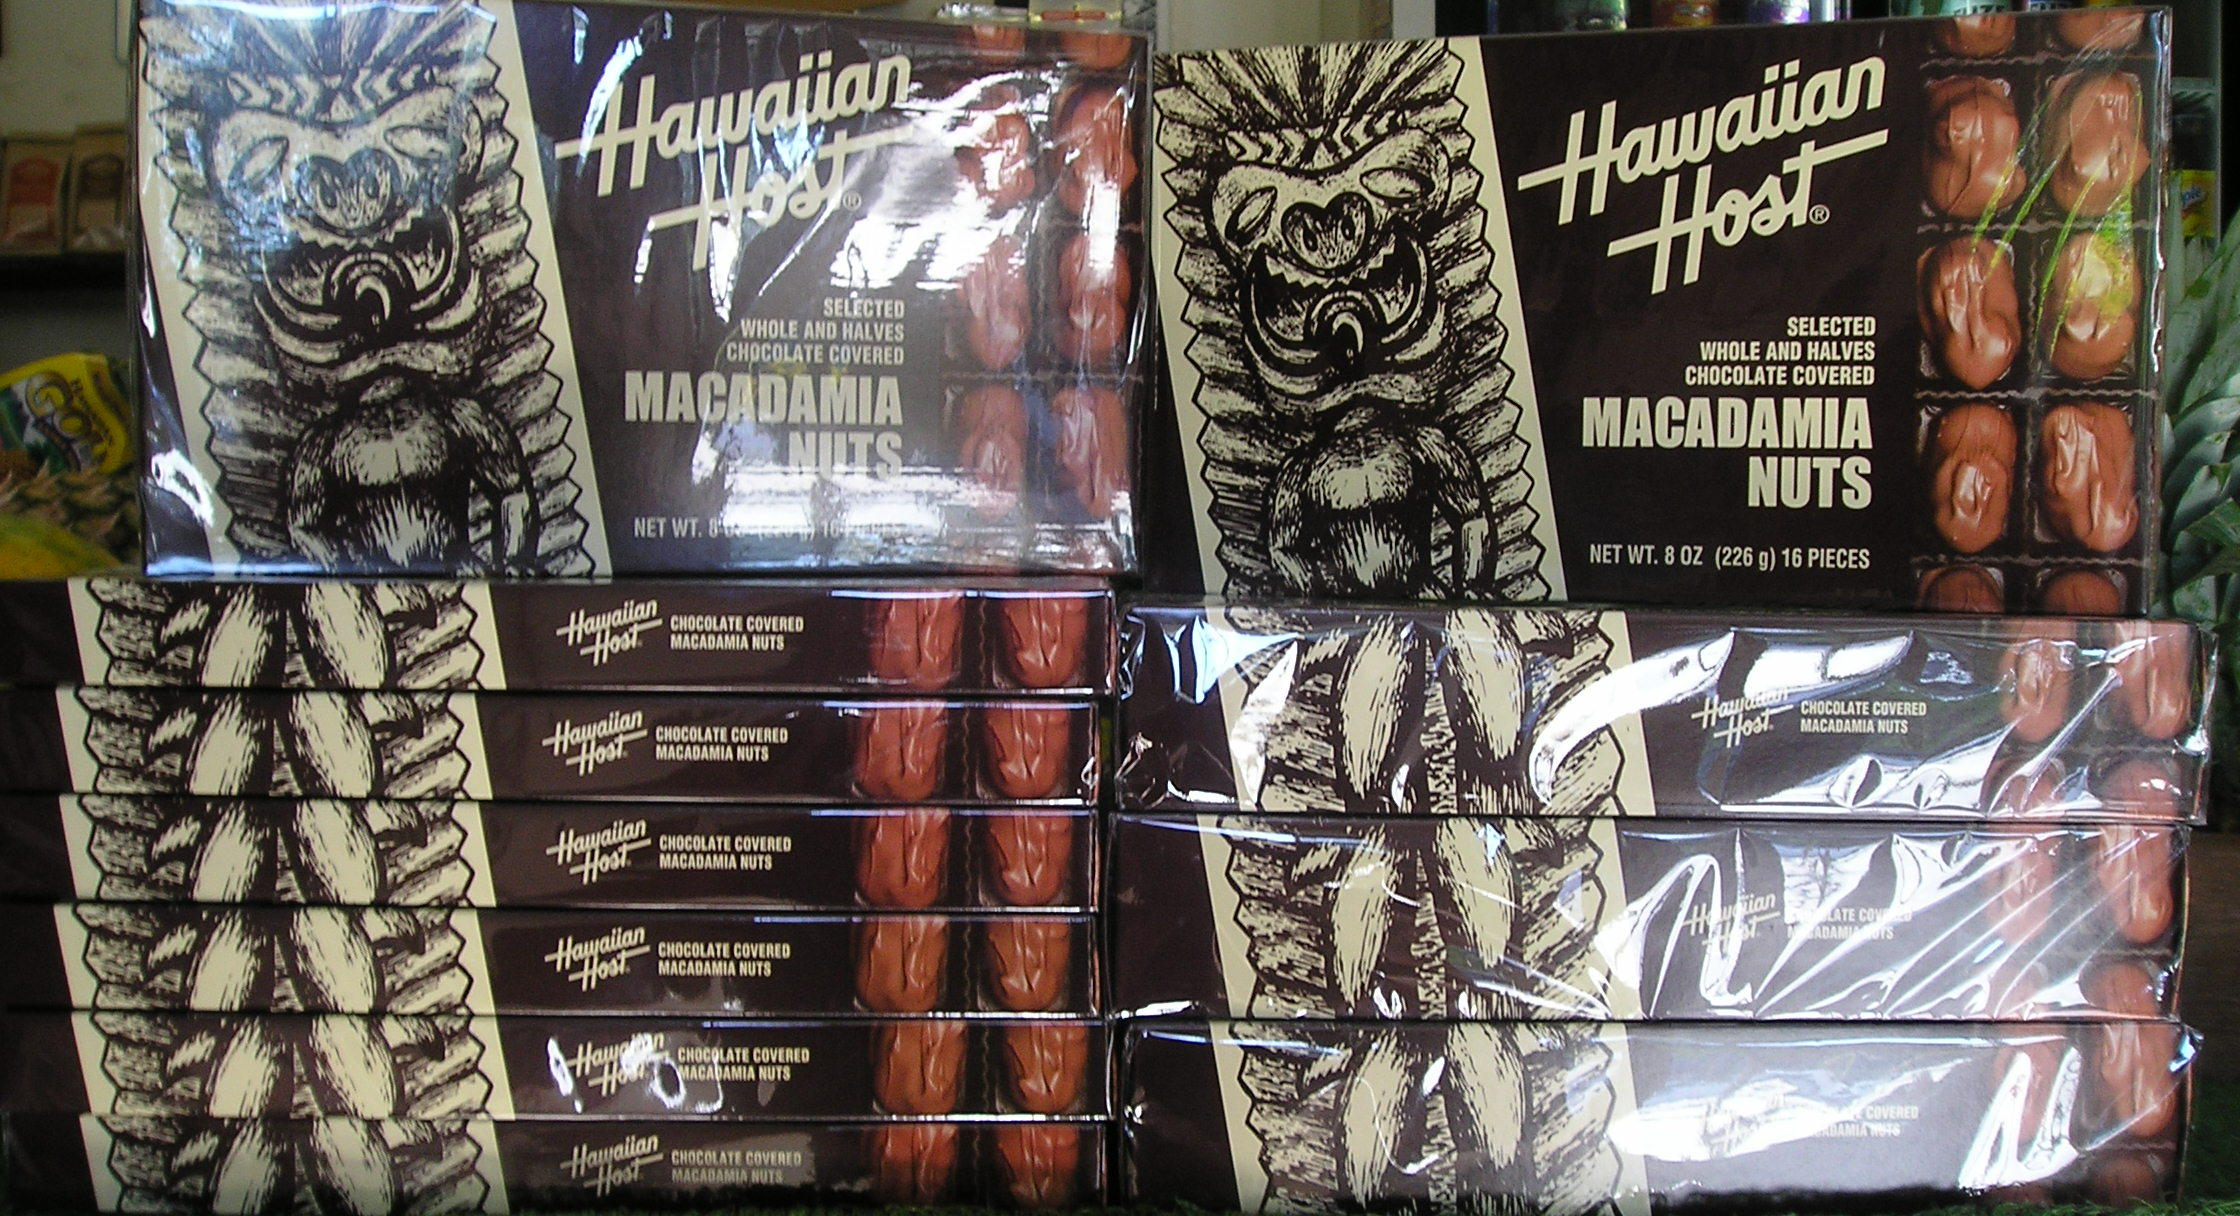 Hawaiian host chocolate mac nuts